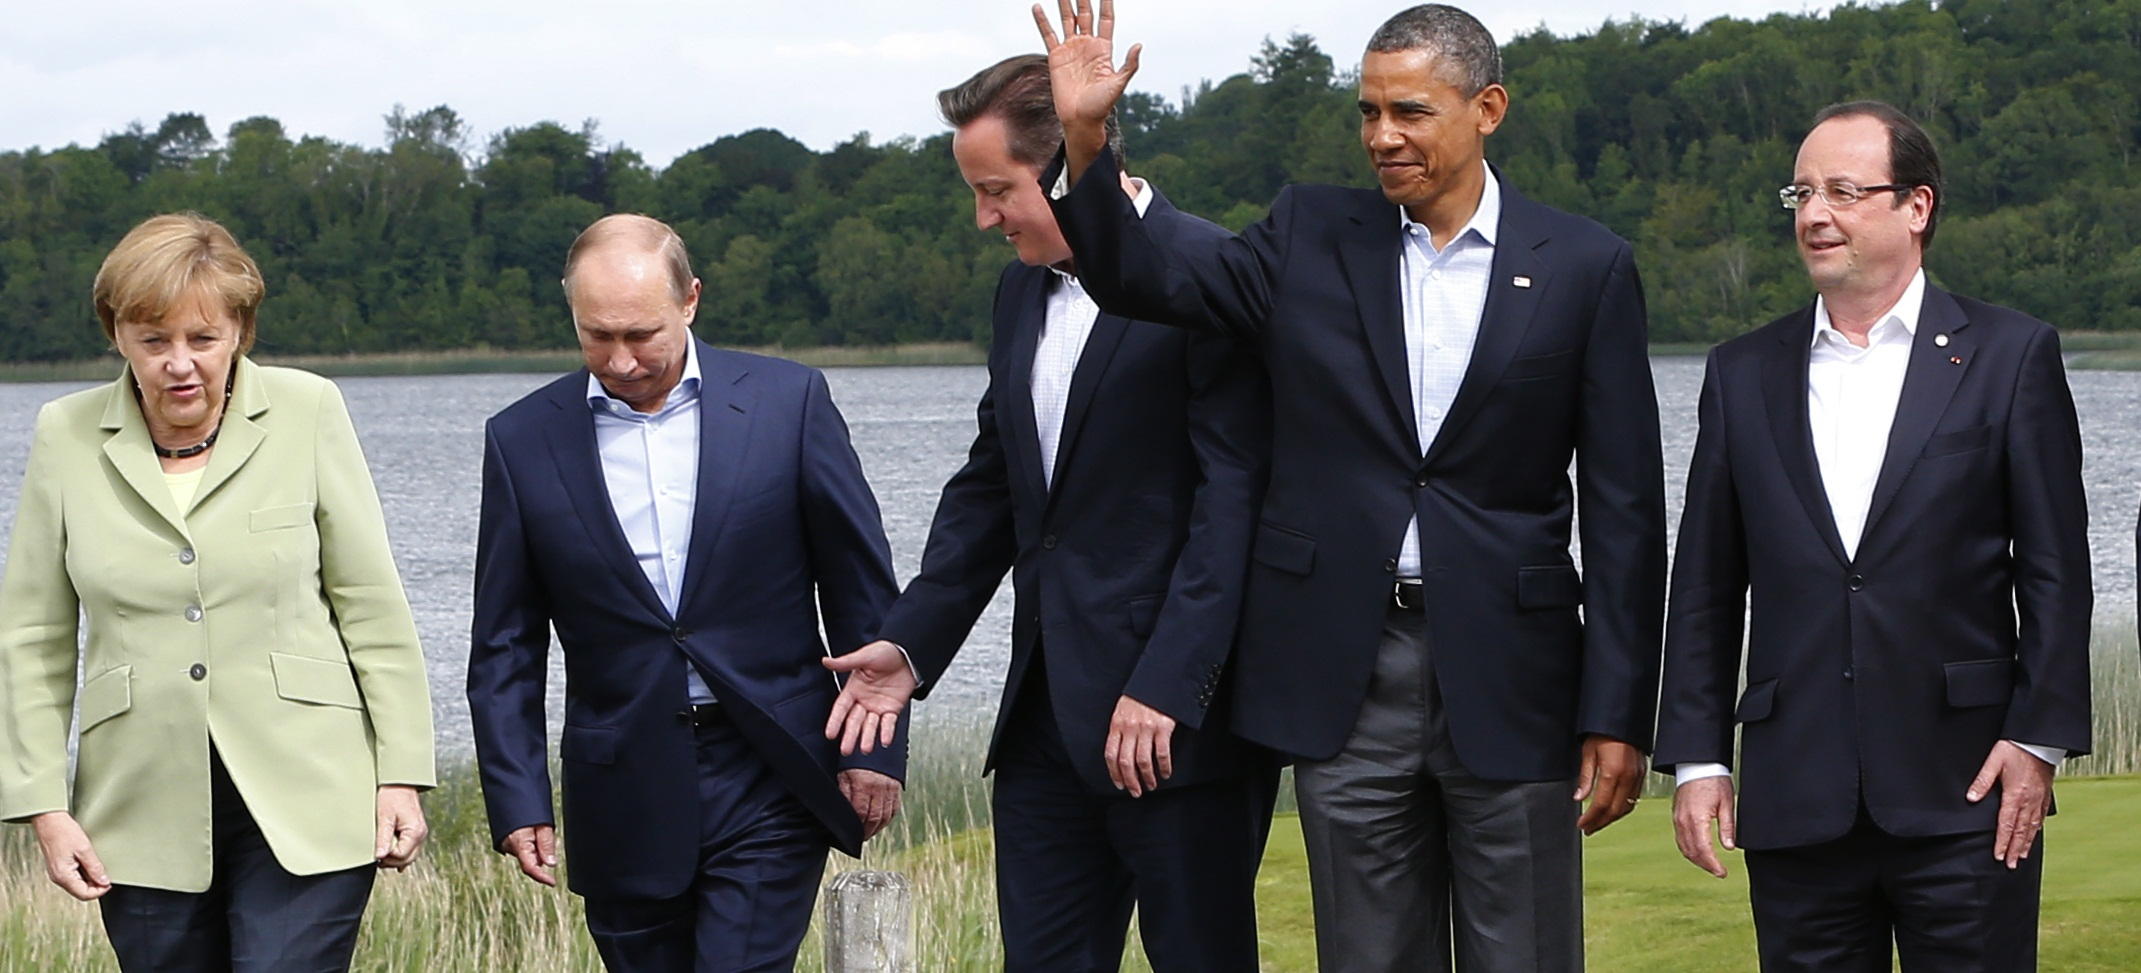 Britain's Prime Minister David Cameron (C) arrives for a group photo with (L-R) German Chancellor Angela Merkel, Russia's President Vladimir Putin, U.S. President Barack Obama and France's President Francois Hollande at the G8 Summit, at Lough Erne, near Enniskillen, in Northern Ireland June 18, 2013.  REUTERS/Yves Herman (NORTHERN IRELAND  - Tags: POLITICS) - RTX10RYY